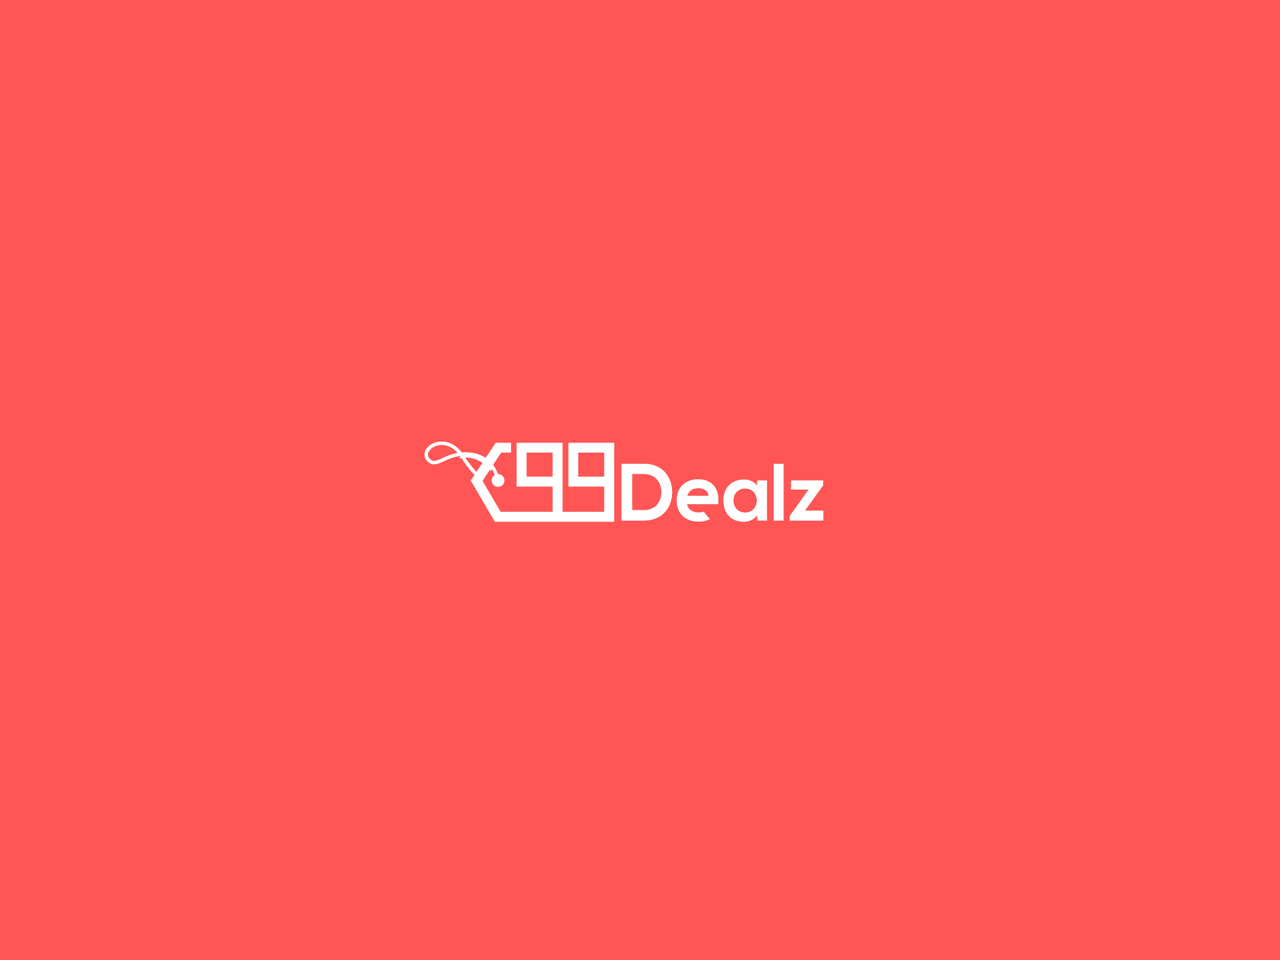 ecommerce logo design 99Dealz price tag